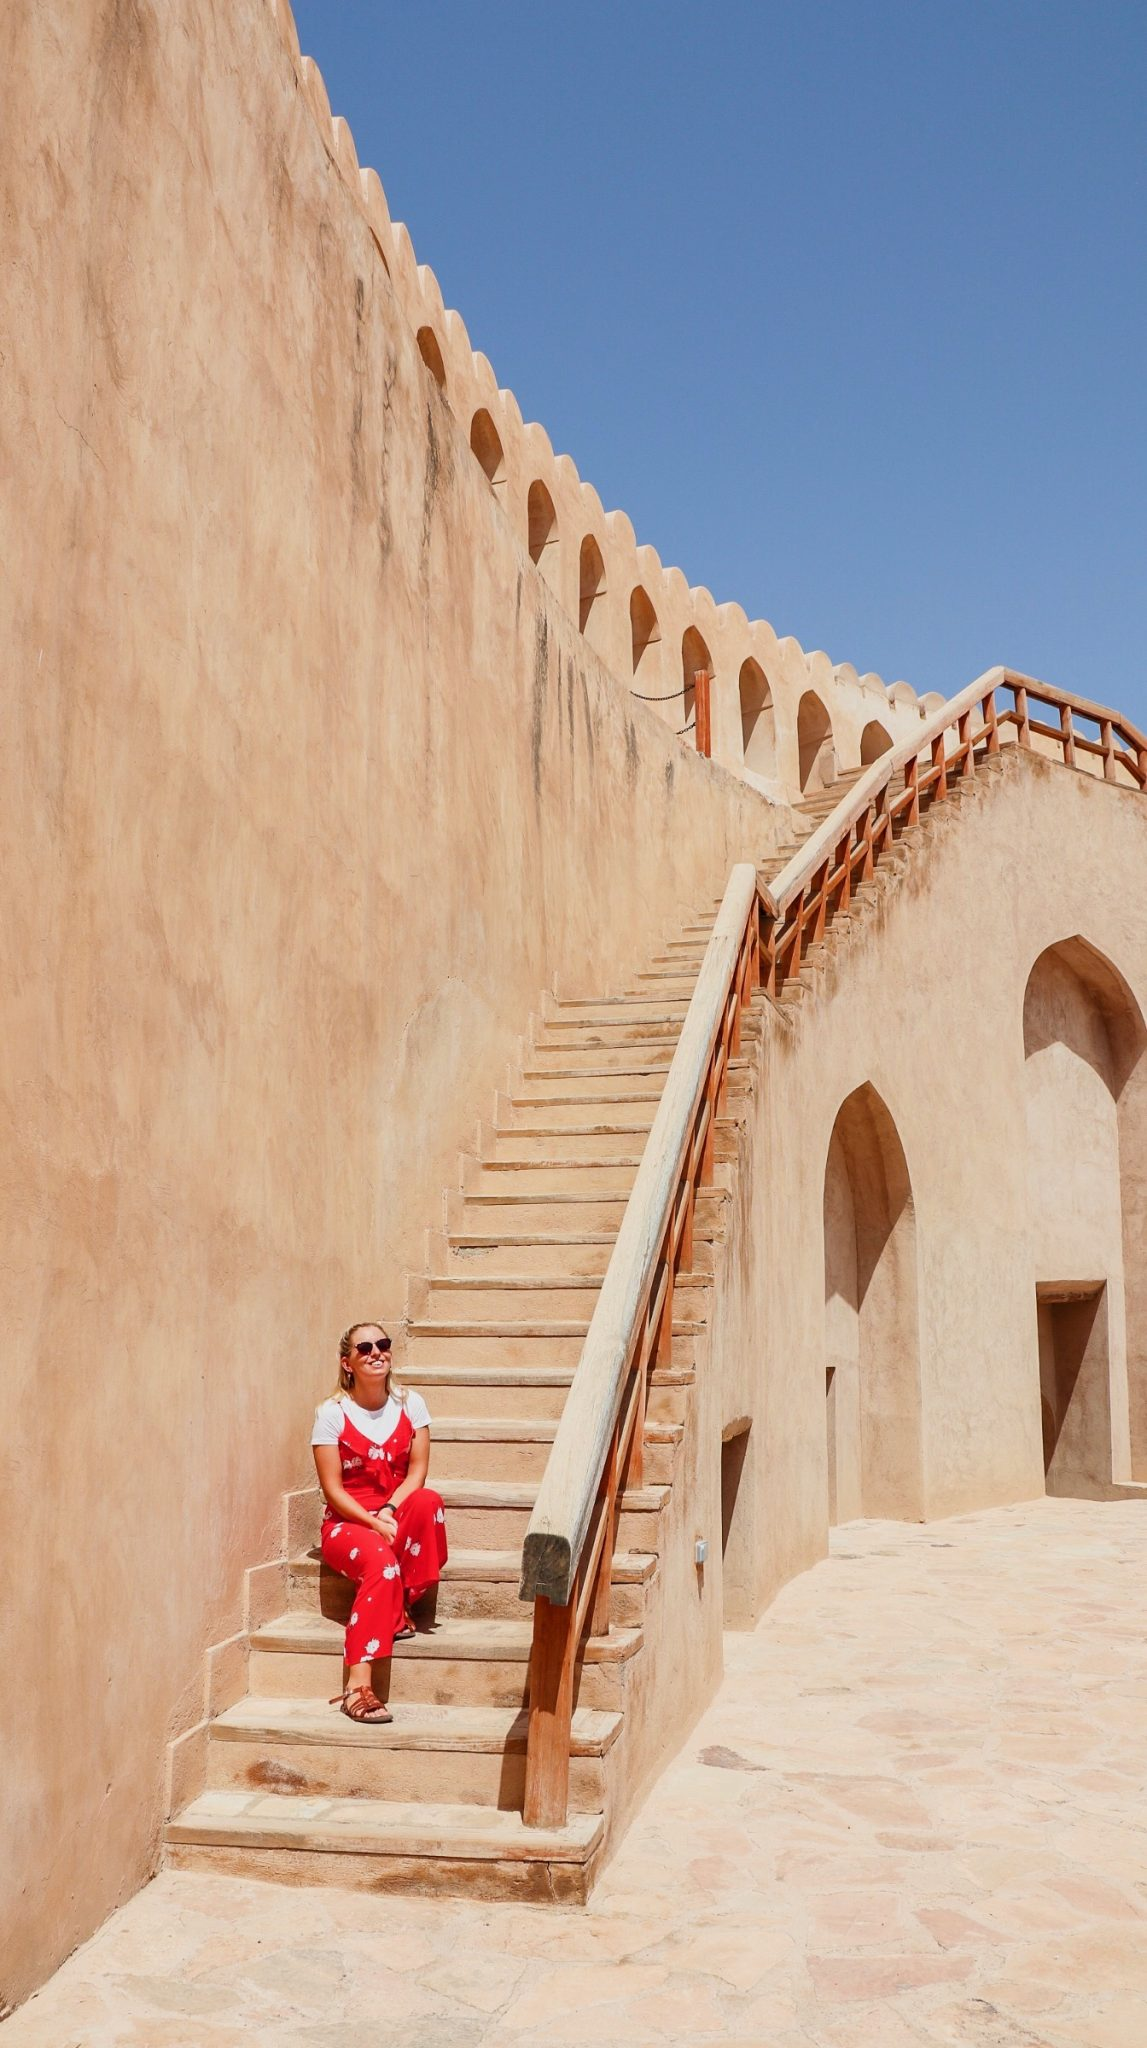 Oman Road Trip from Dubai + Places to Stop - Nizwa Fort